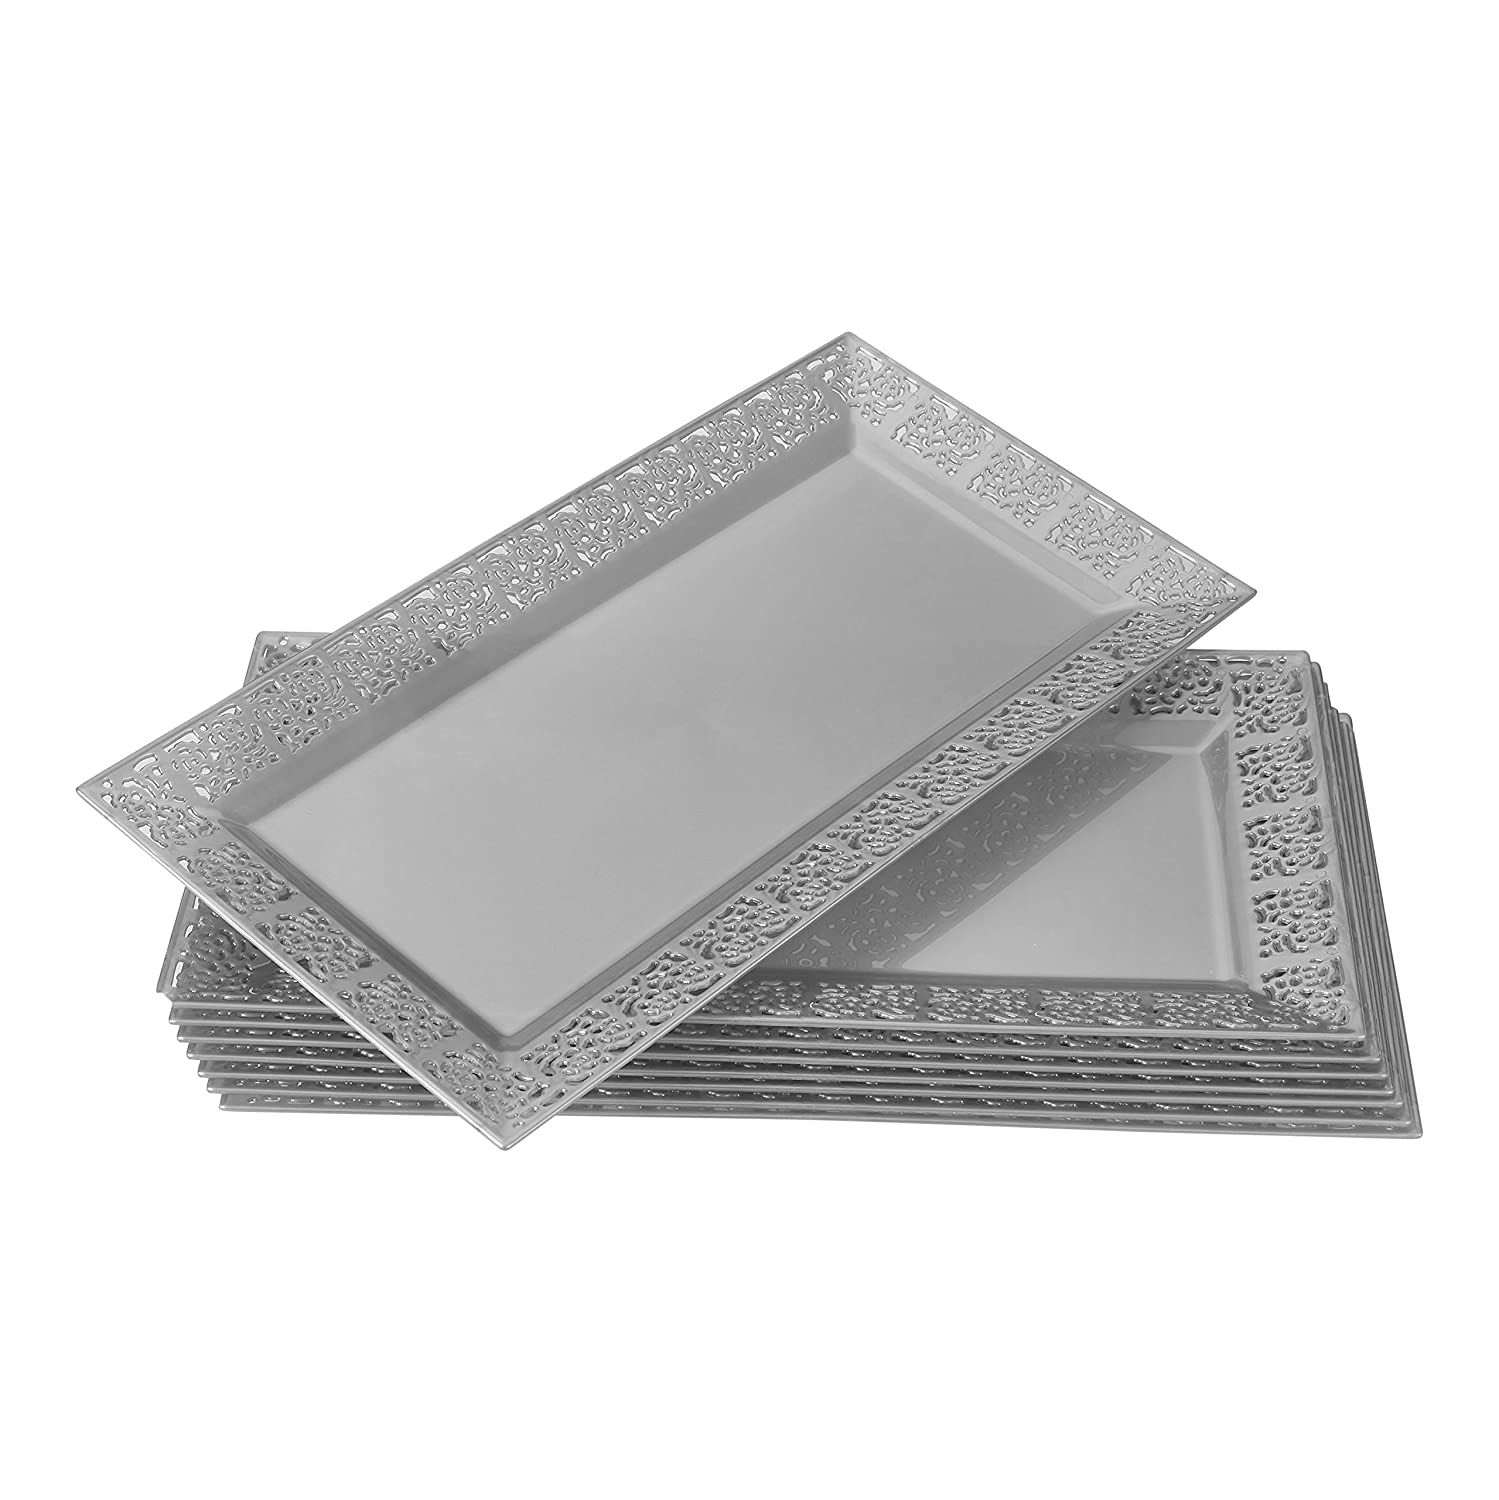 "for Upscale Wedding and Dining DISPOSABLE LACE TRAYS 6 pc 14/"" x 7.5/"" Ivory"